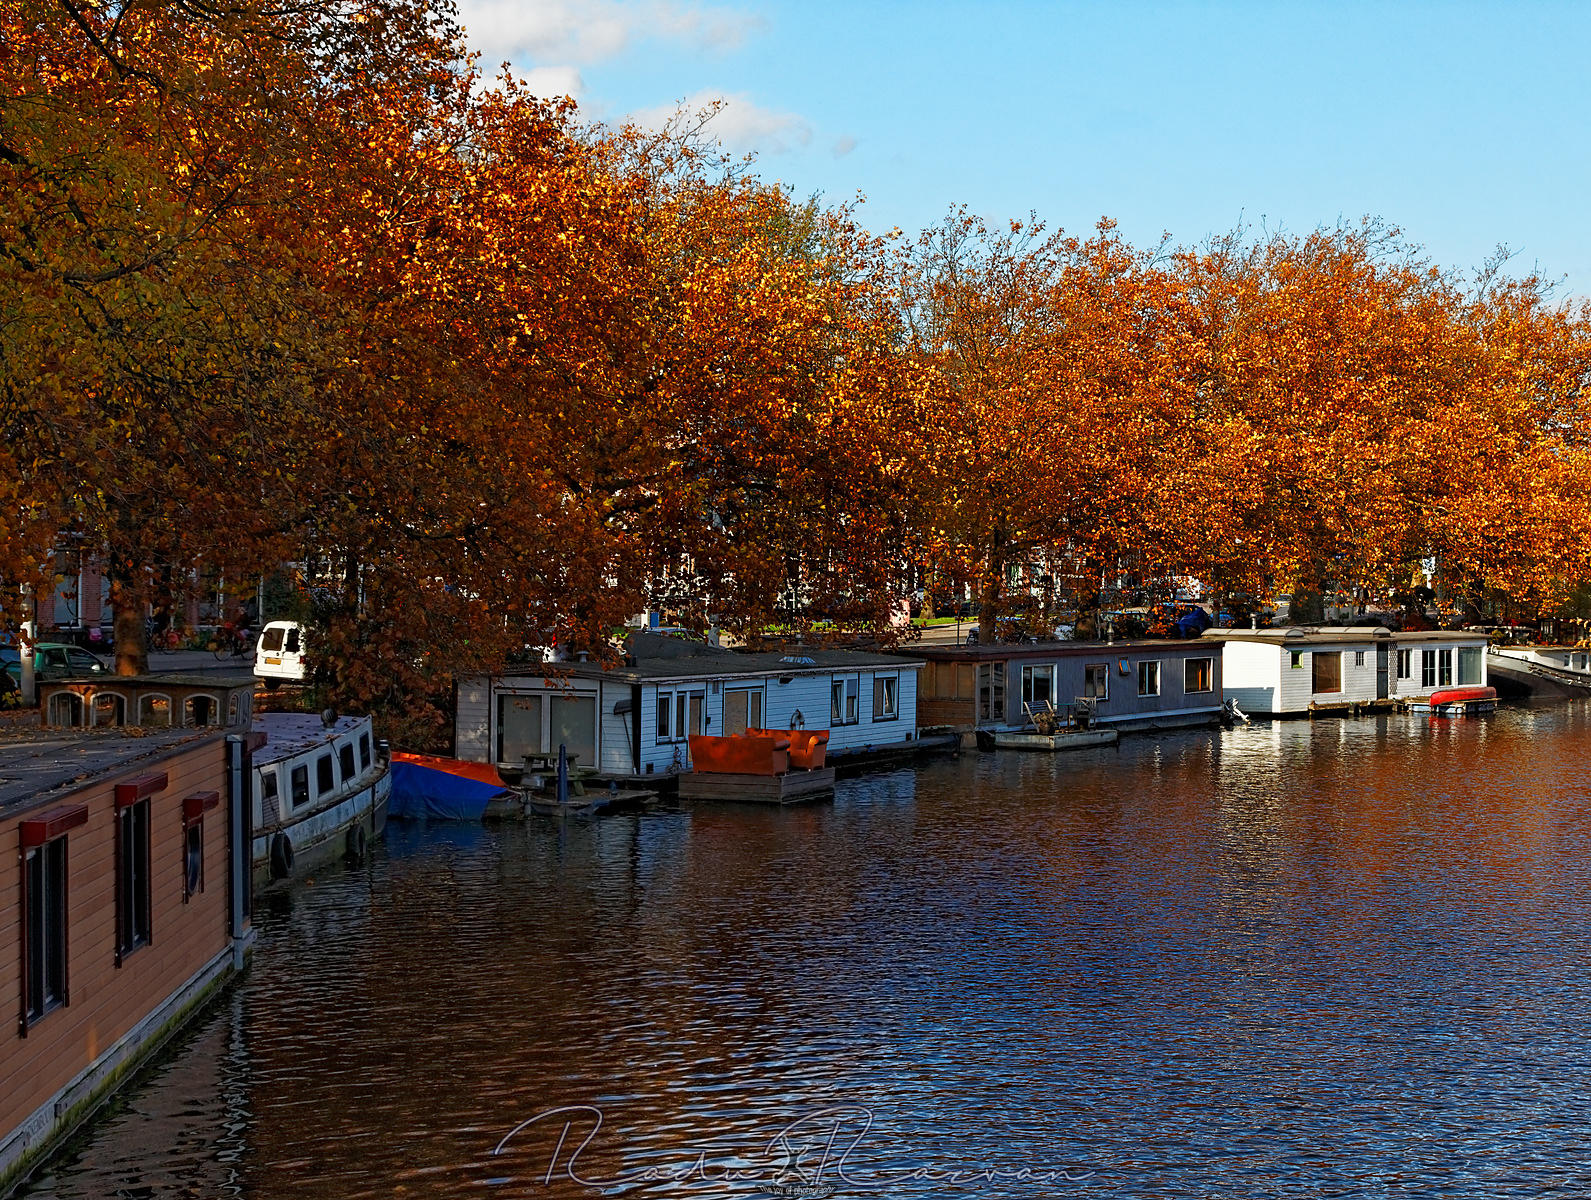 Autumn Canal in Amsterdam